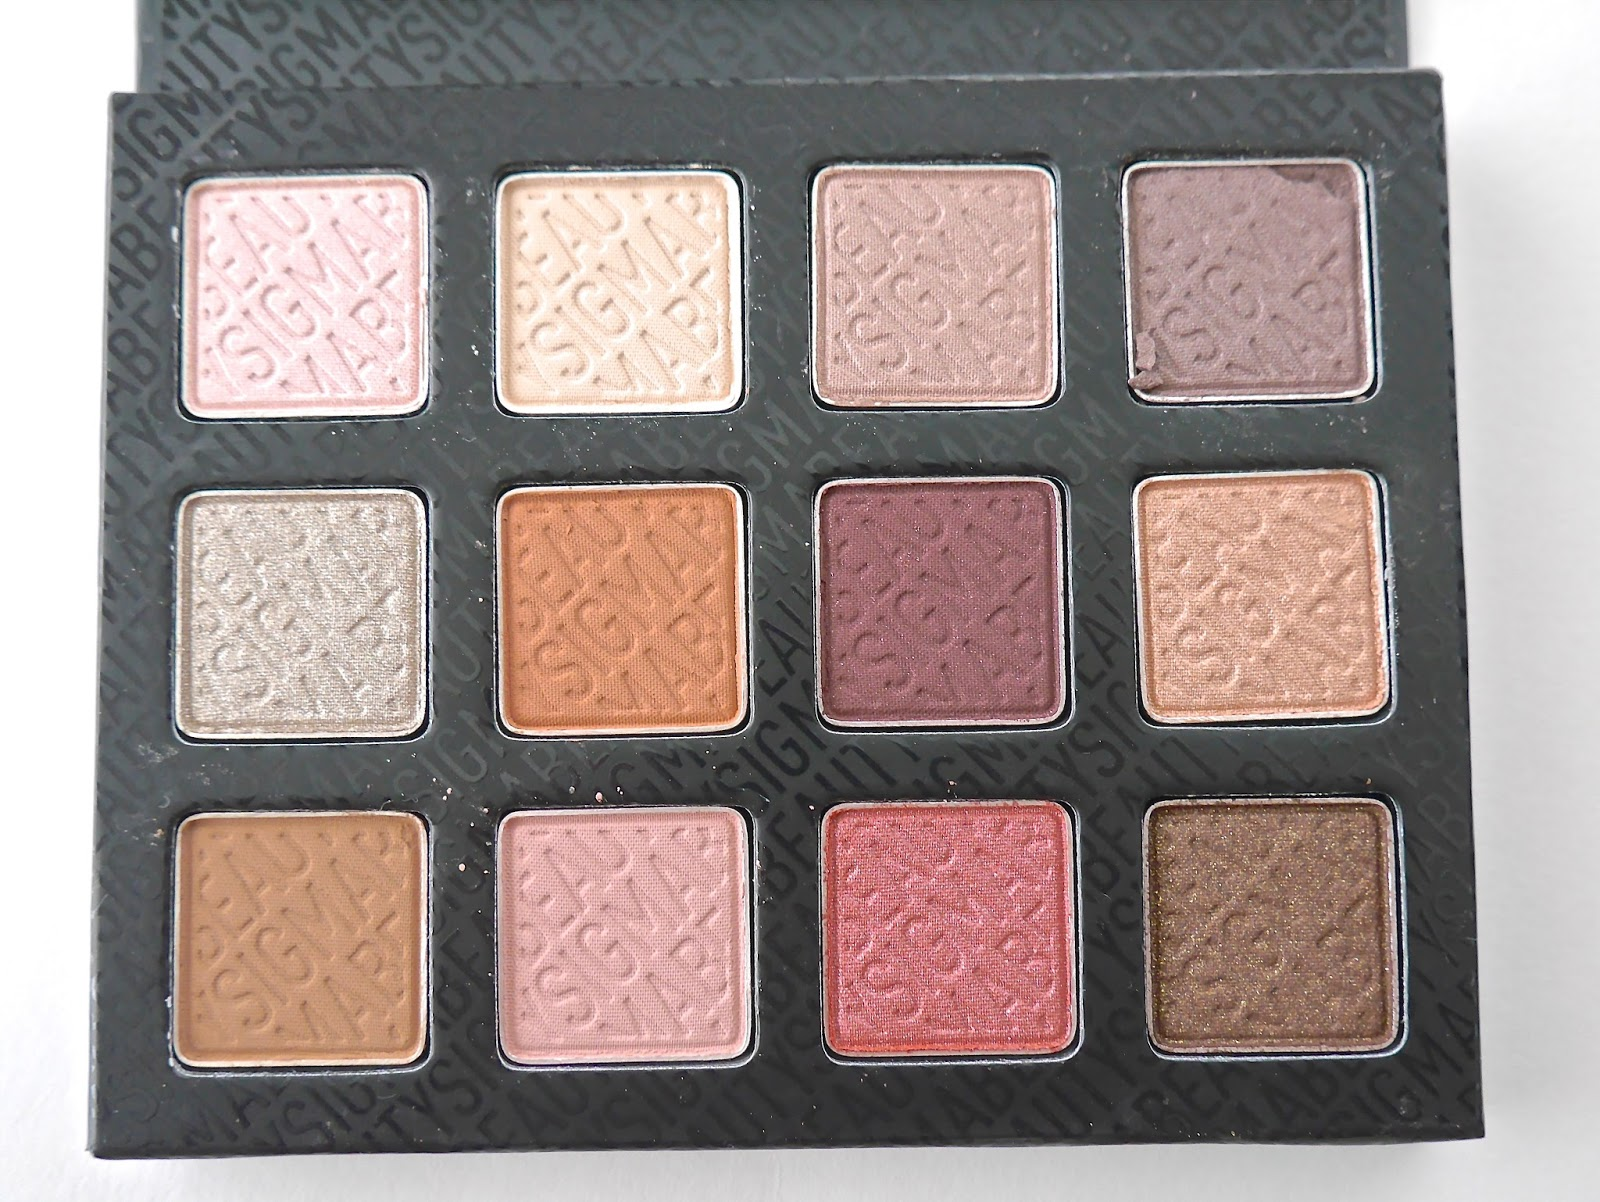 eyeshadow, eyeshadow palette, neutrals, warm shades